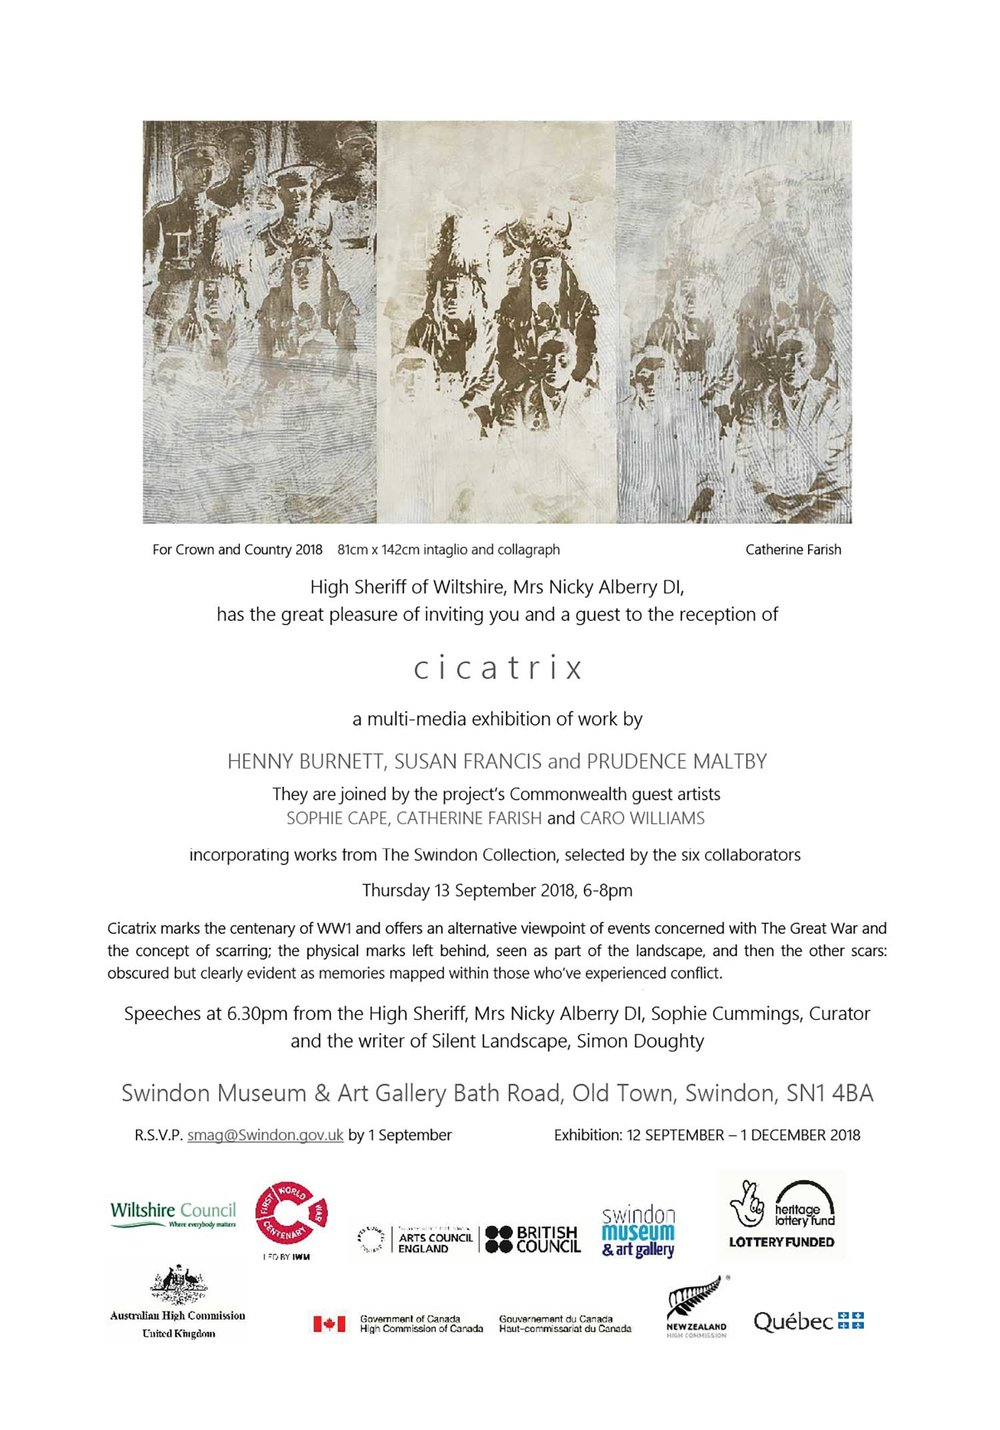 CICATRIX Exhibition at the Swindon Museum & Art Gallery  12 September to 1 December 2018  Opening 13 September 6-8pm